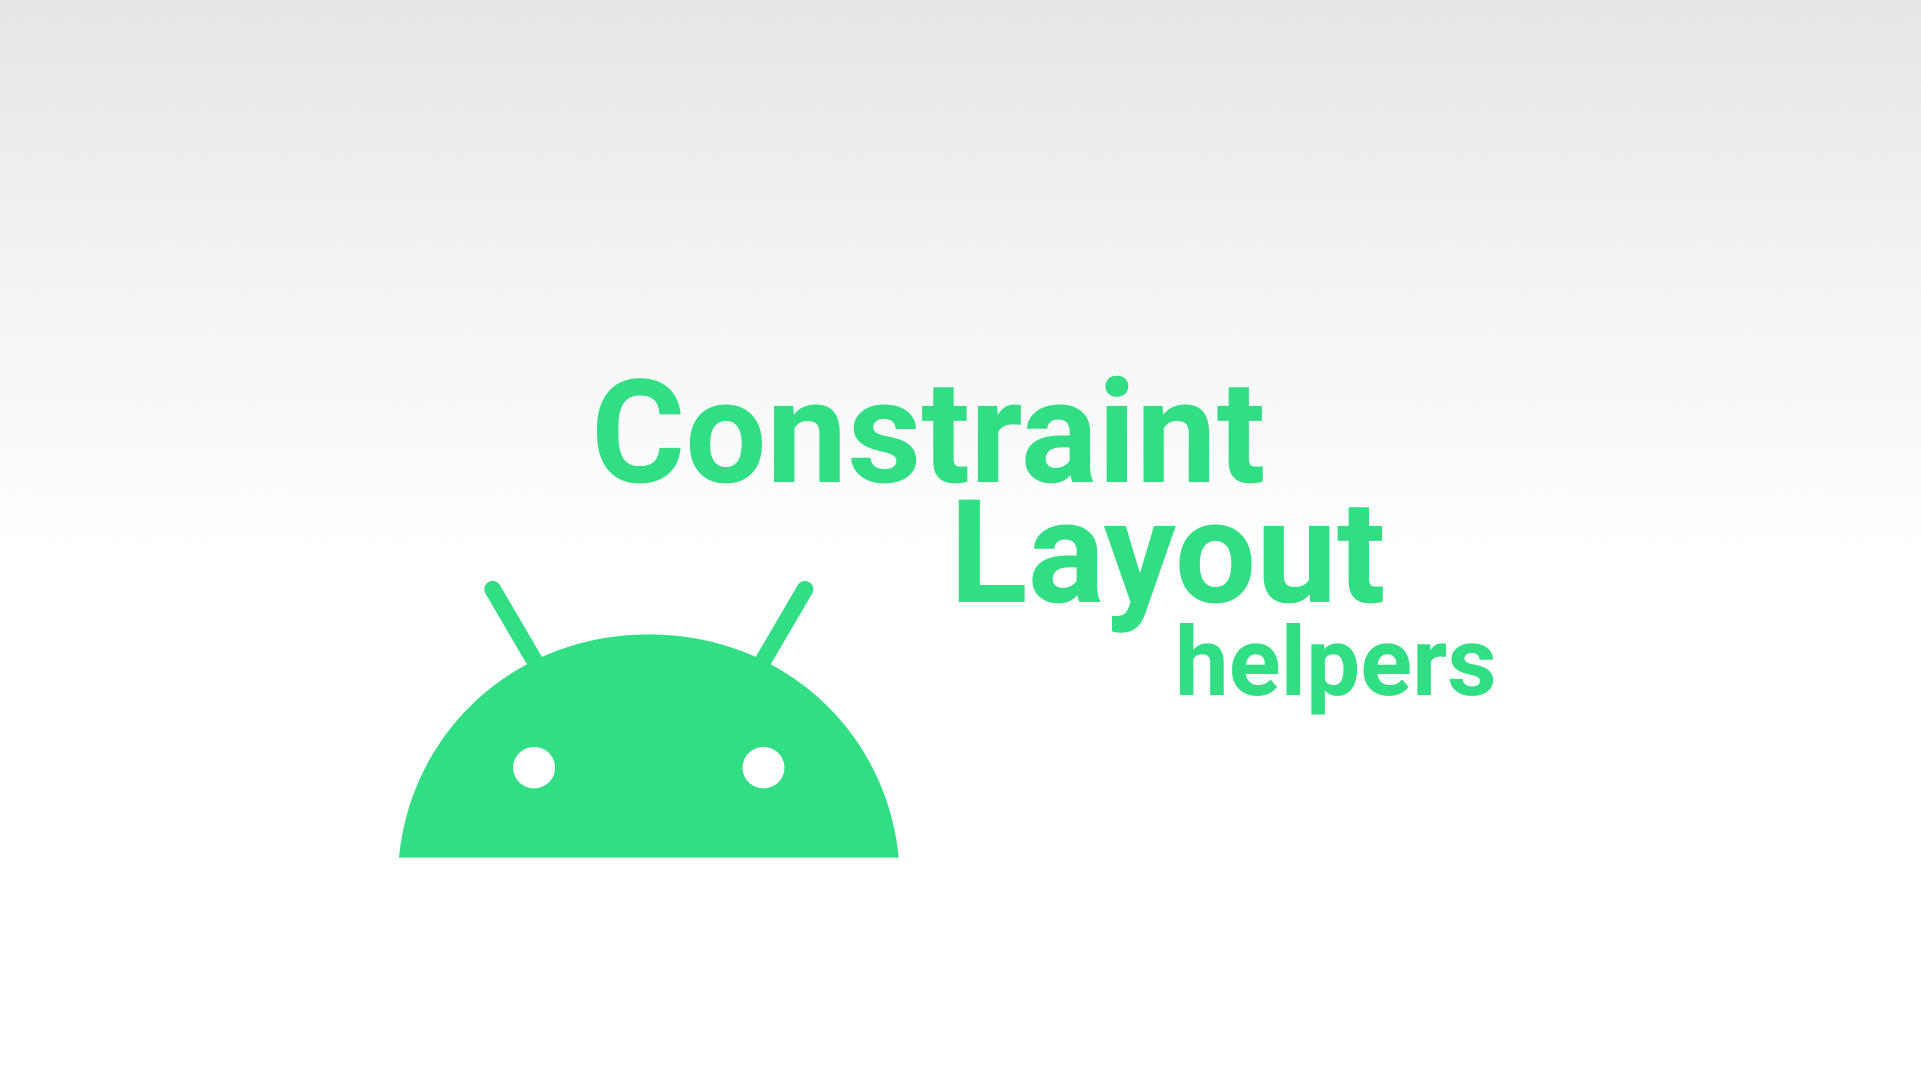 Constraint Layout helpers